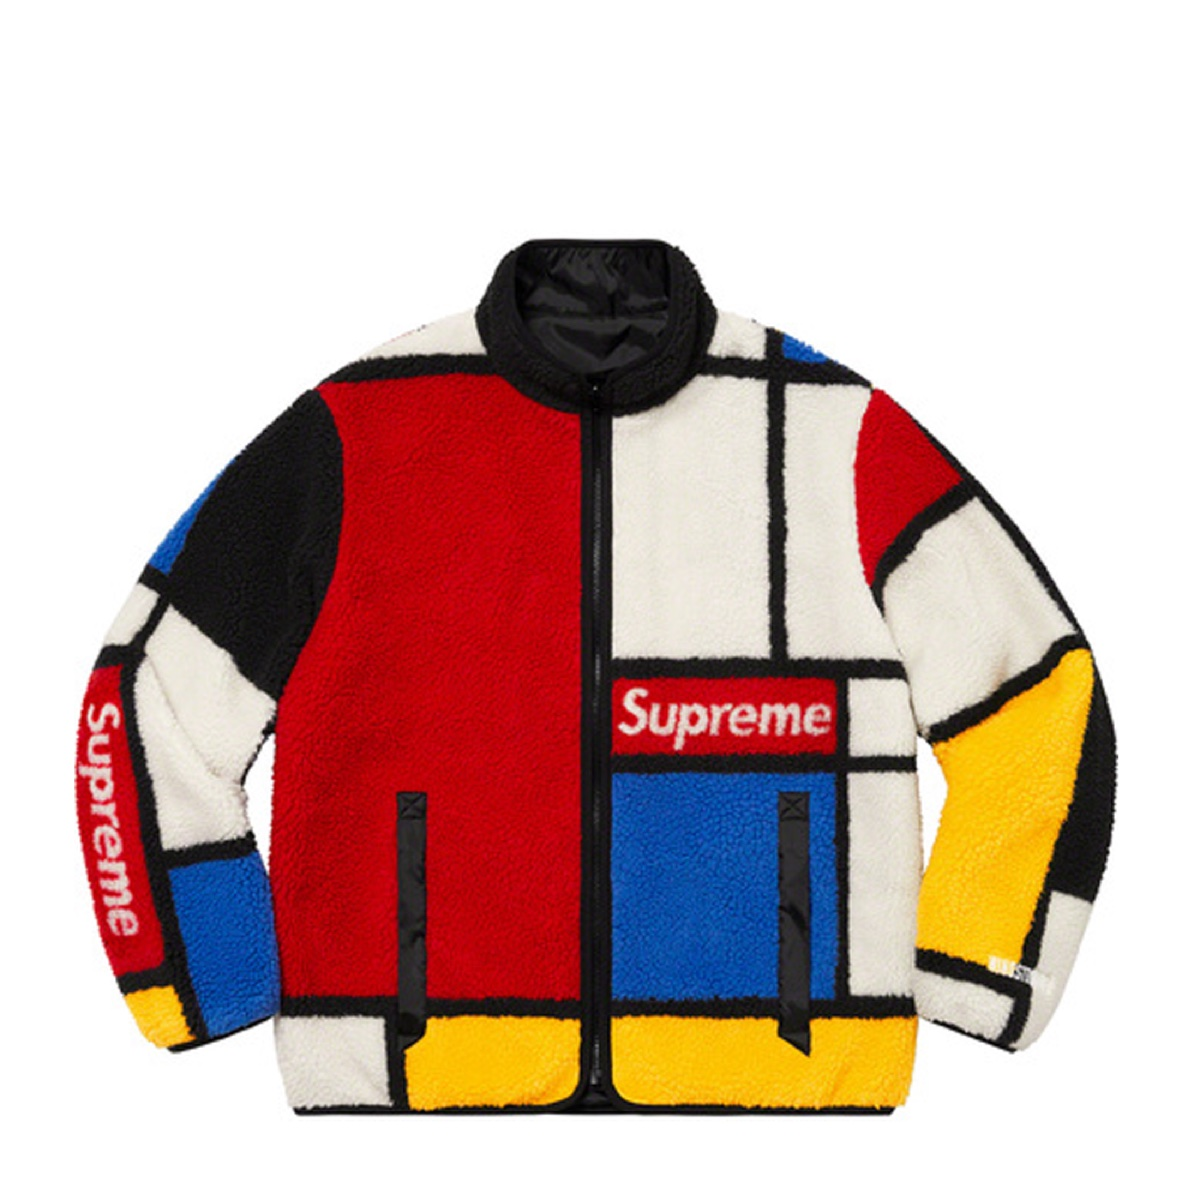 Supreme Reversible Colorblocked Fleece Jacket Red